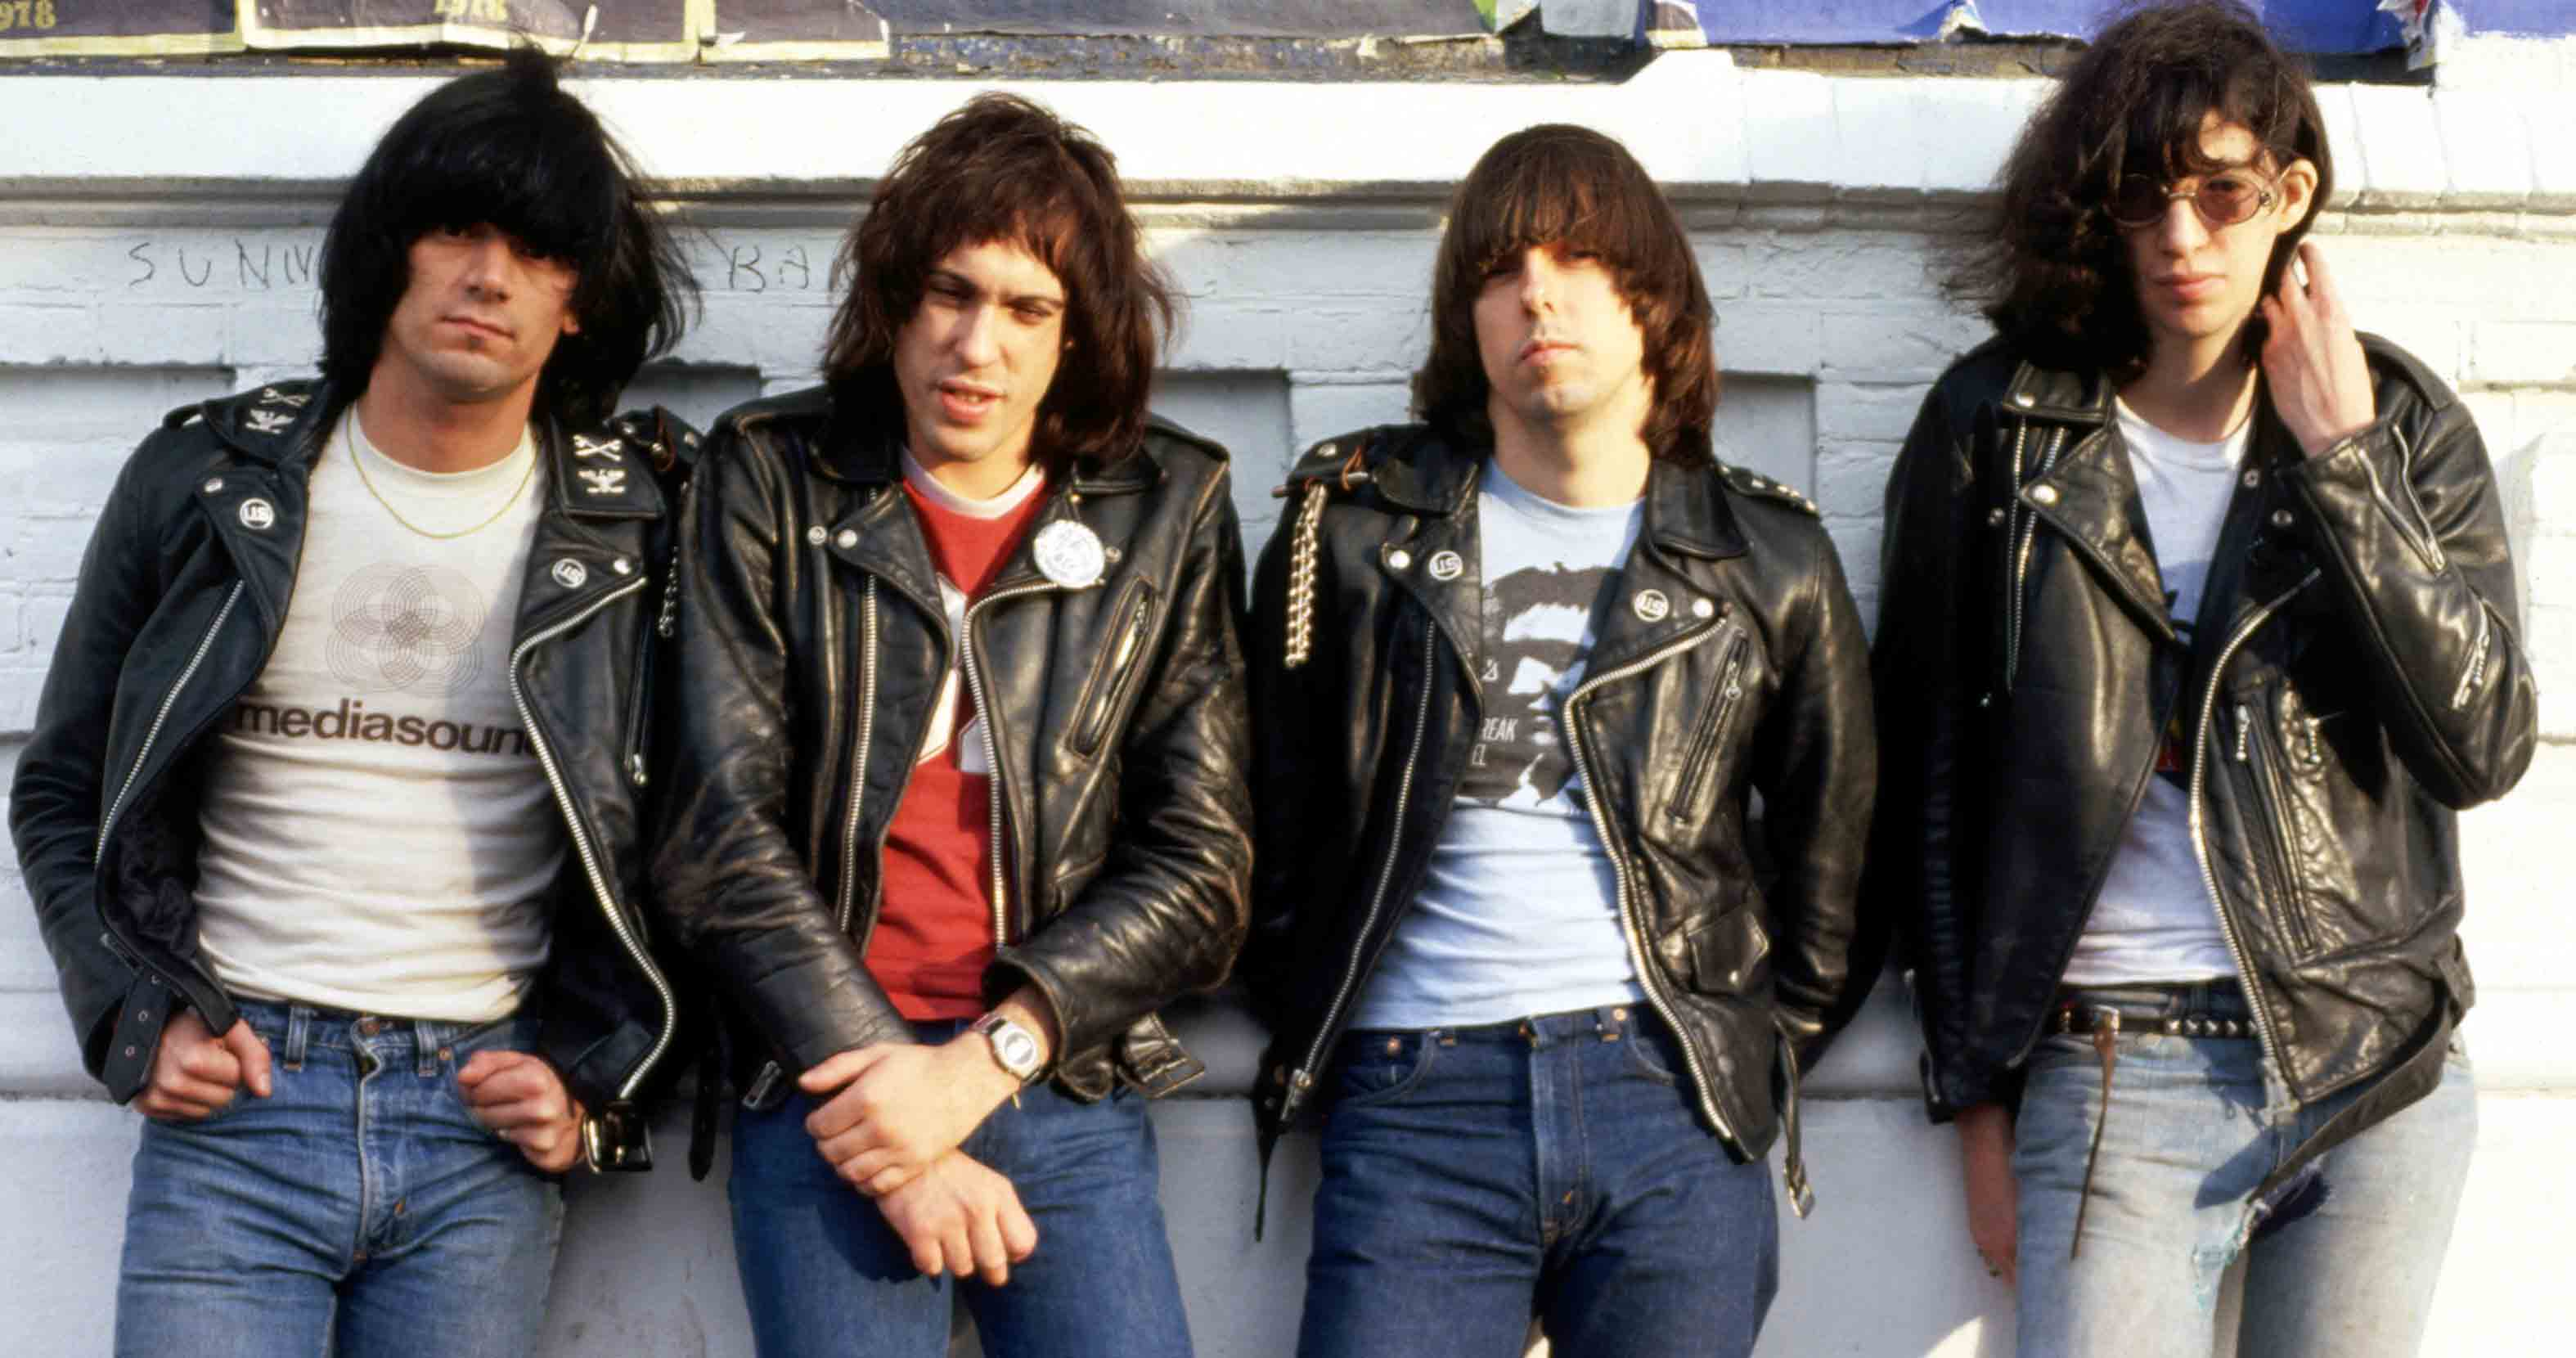 ramones New York a source of Inspiration #2 : famous men in New York